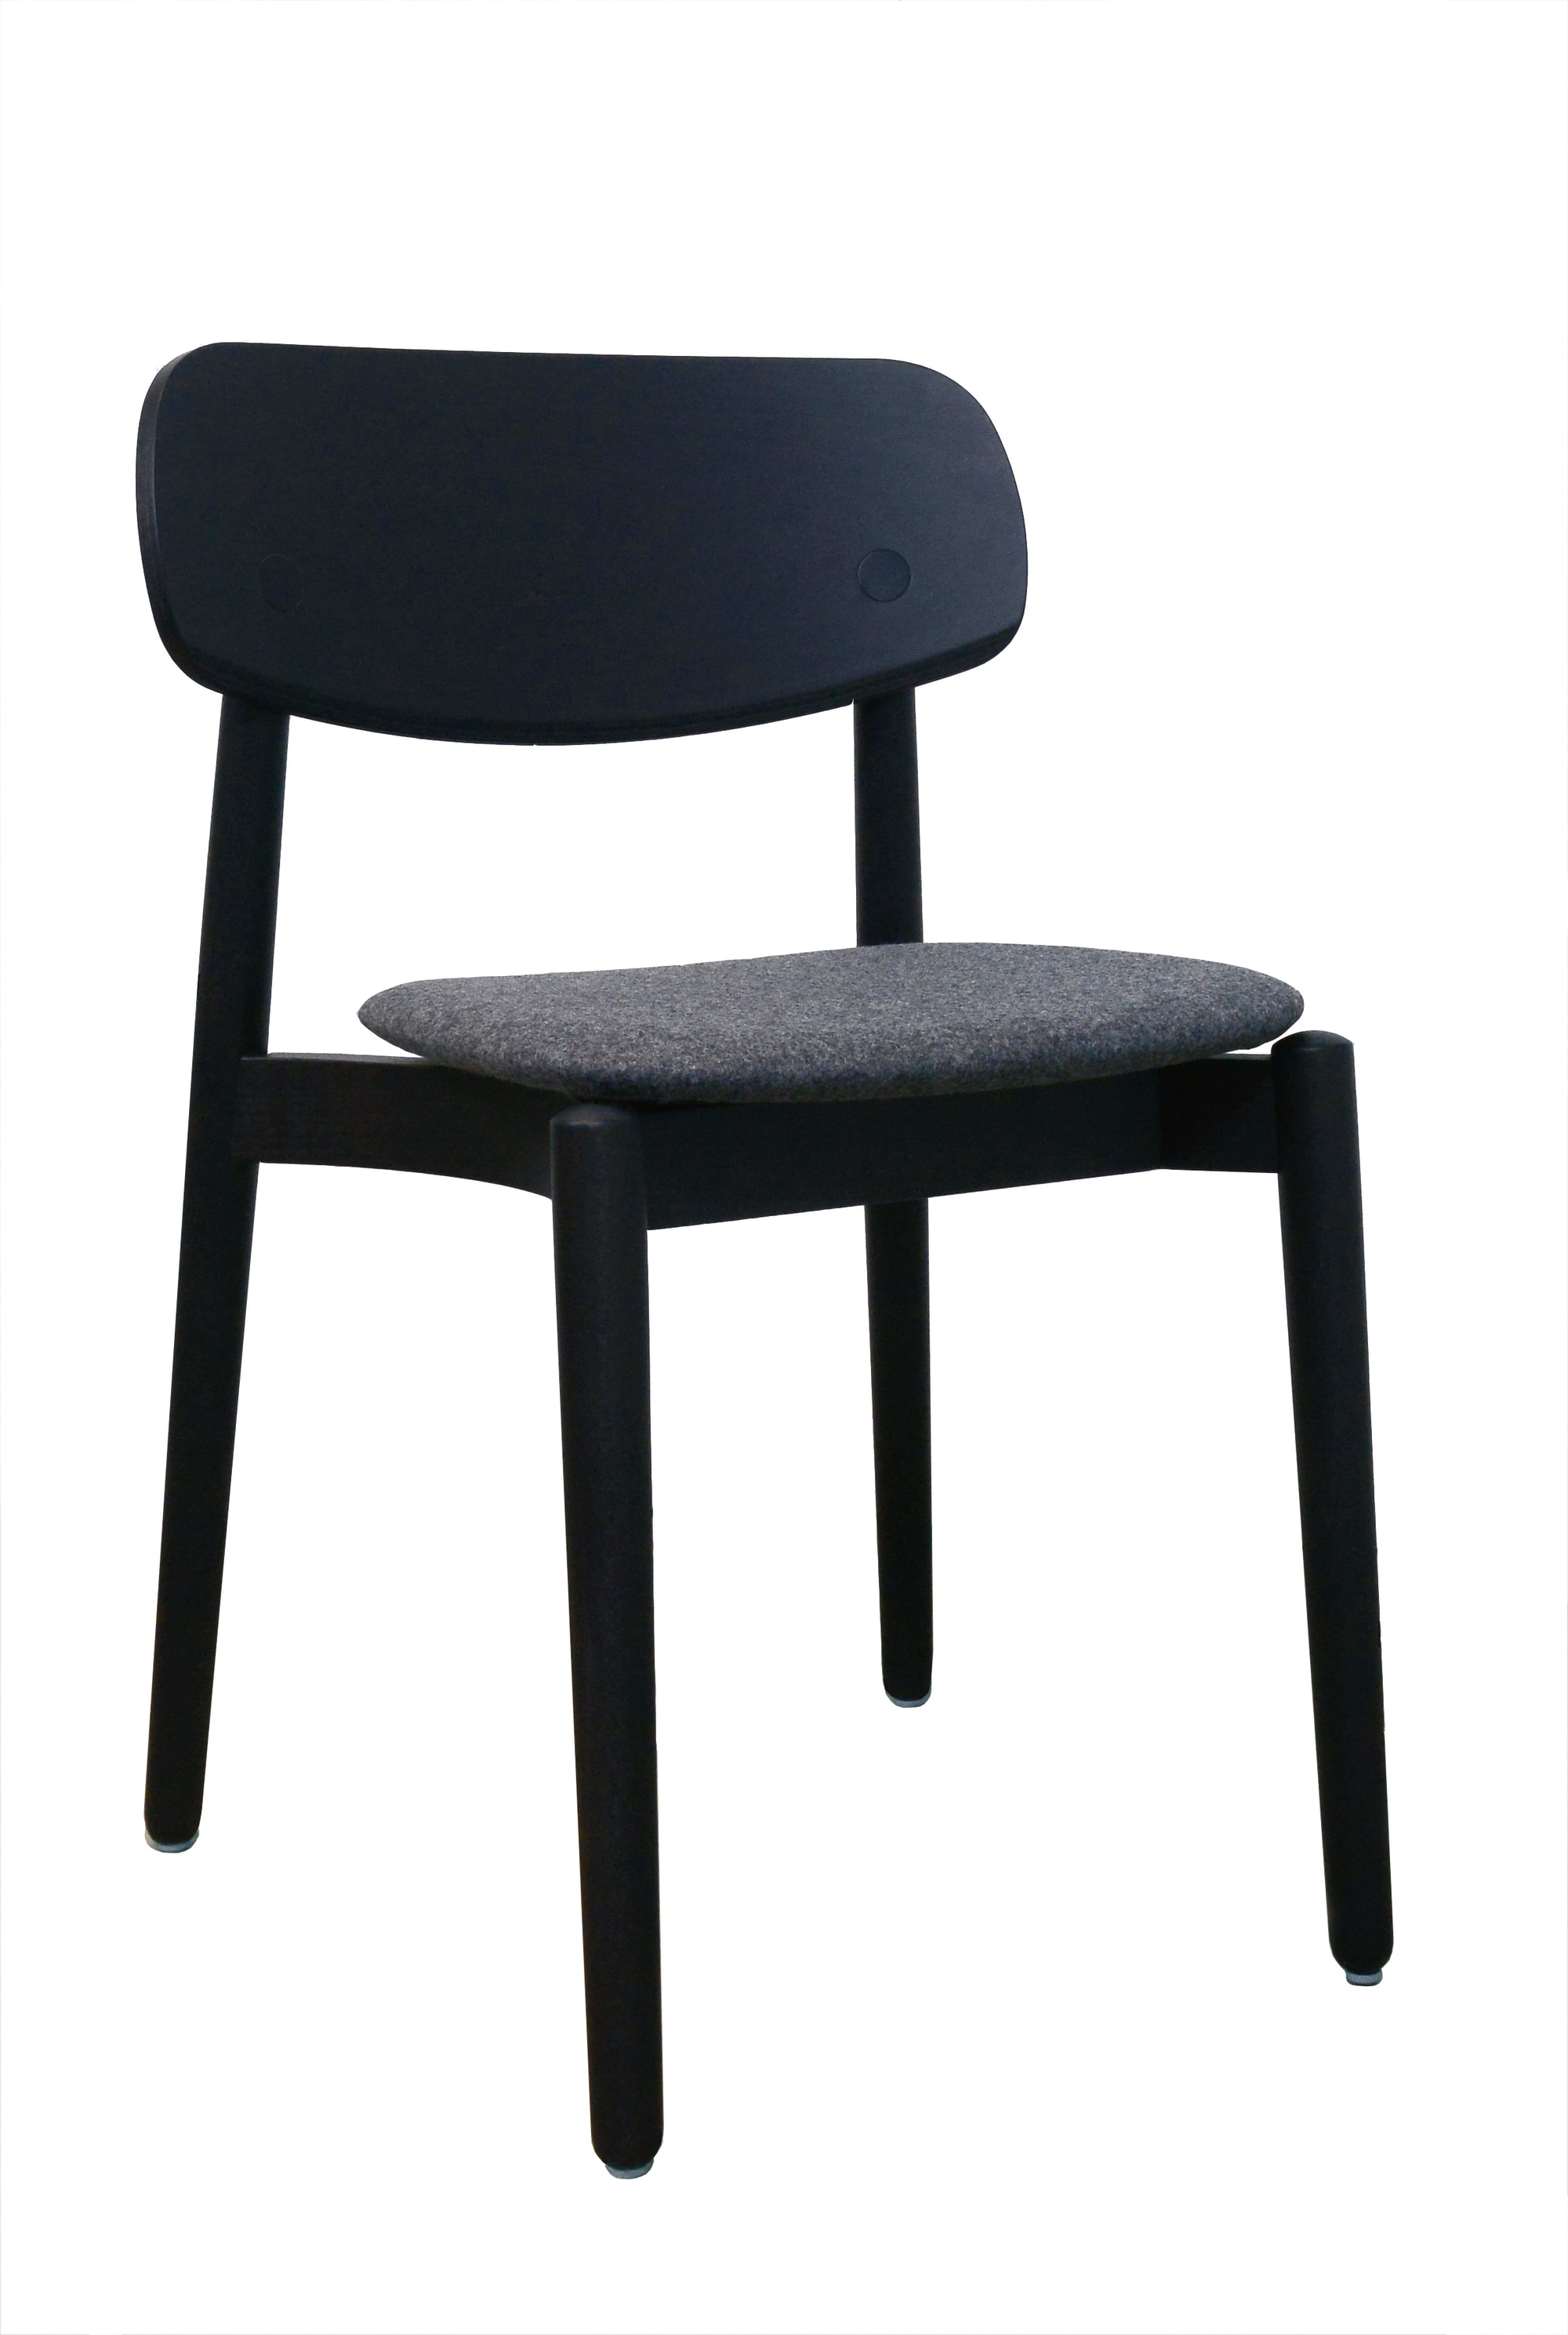 Chairs by Bedont seen at KOL & Cocktails, Gamla Staden - Fizz Barstool and Fizz Chair